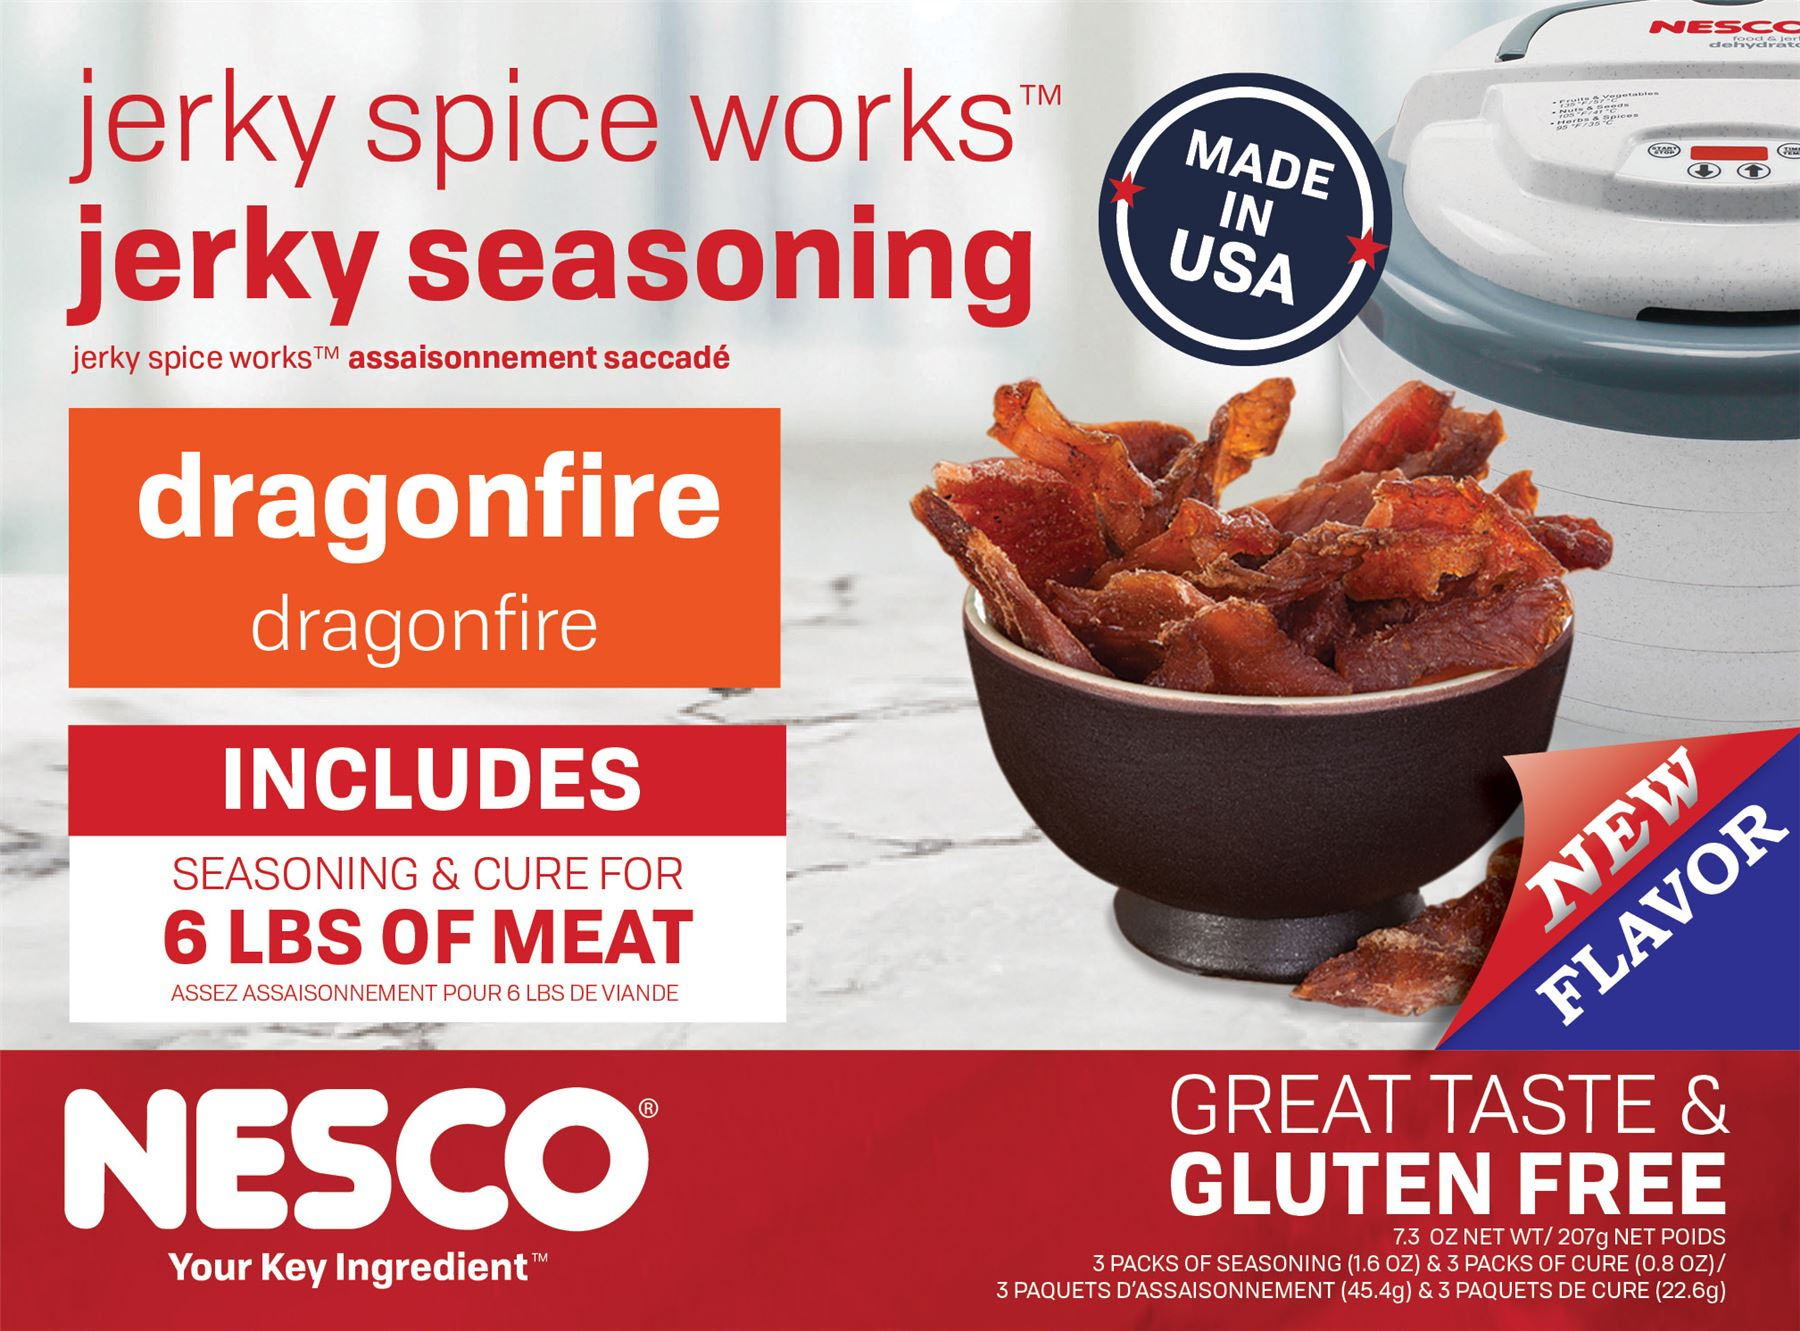 BJDF-6 Jerky Spice Works Dragonfire Flavor Beef Jerky Seasoning By Nesco